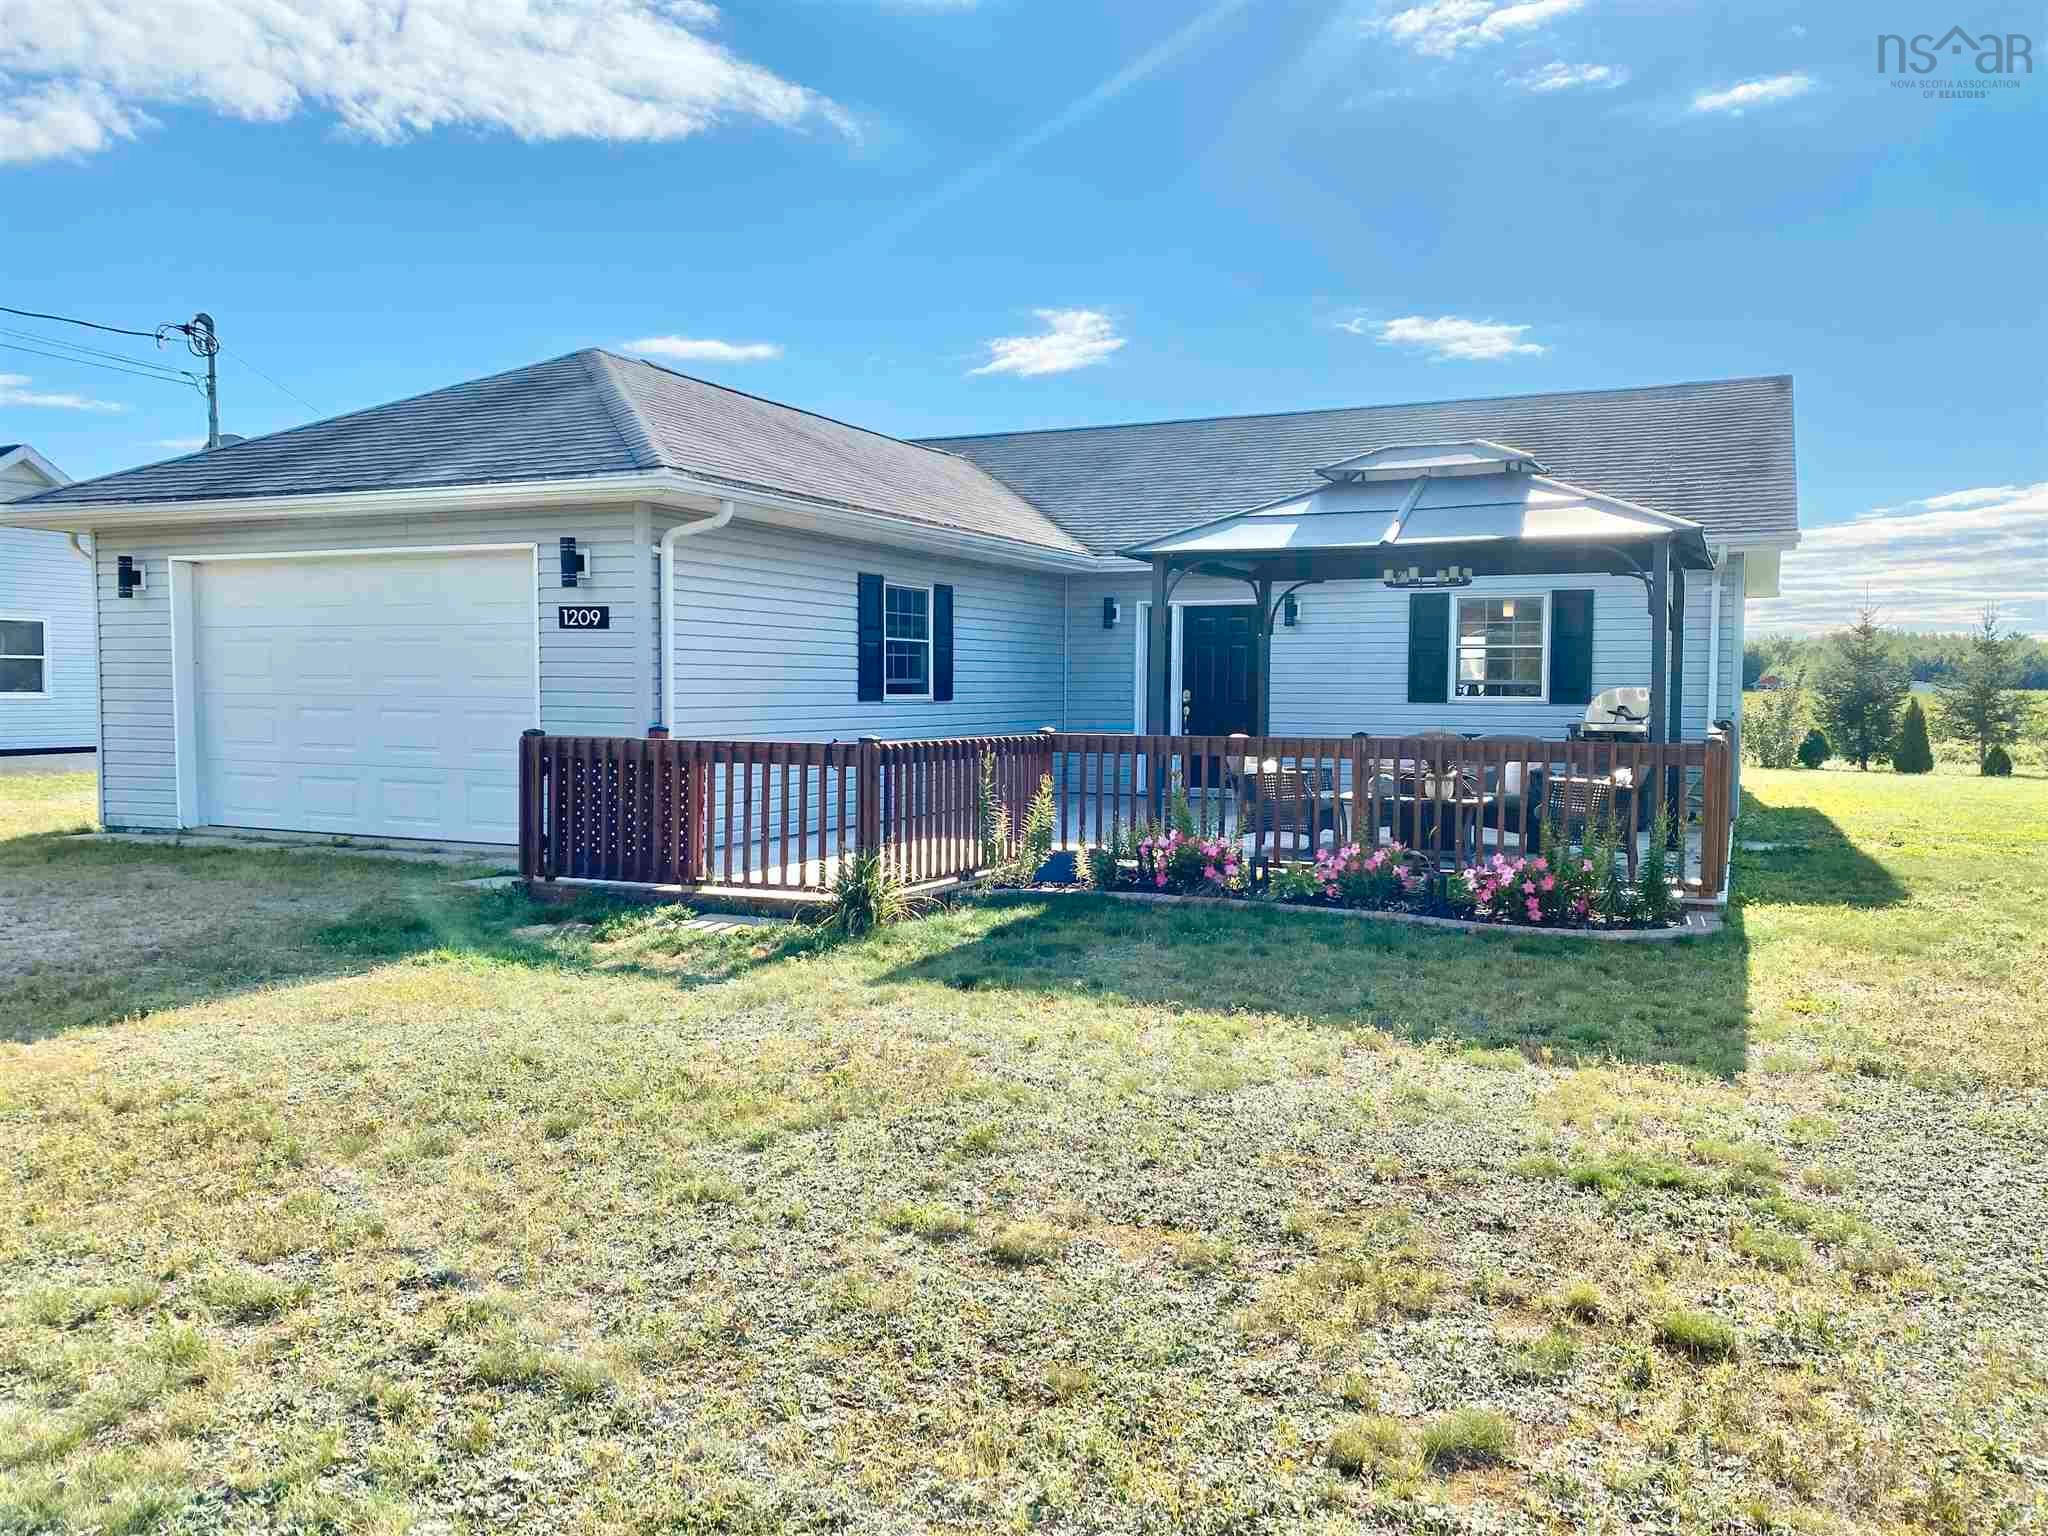 Main Photo: 1209 New Road in Aylesford: 404-Kings County Residential for sale (Annapolis Valley)  : MLS®# 202123778